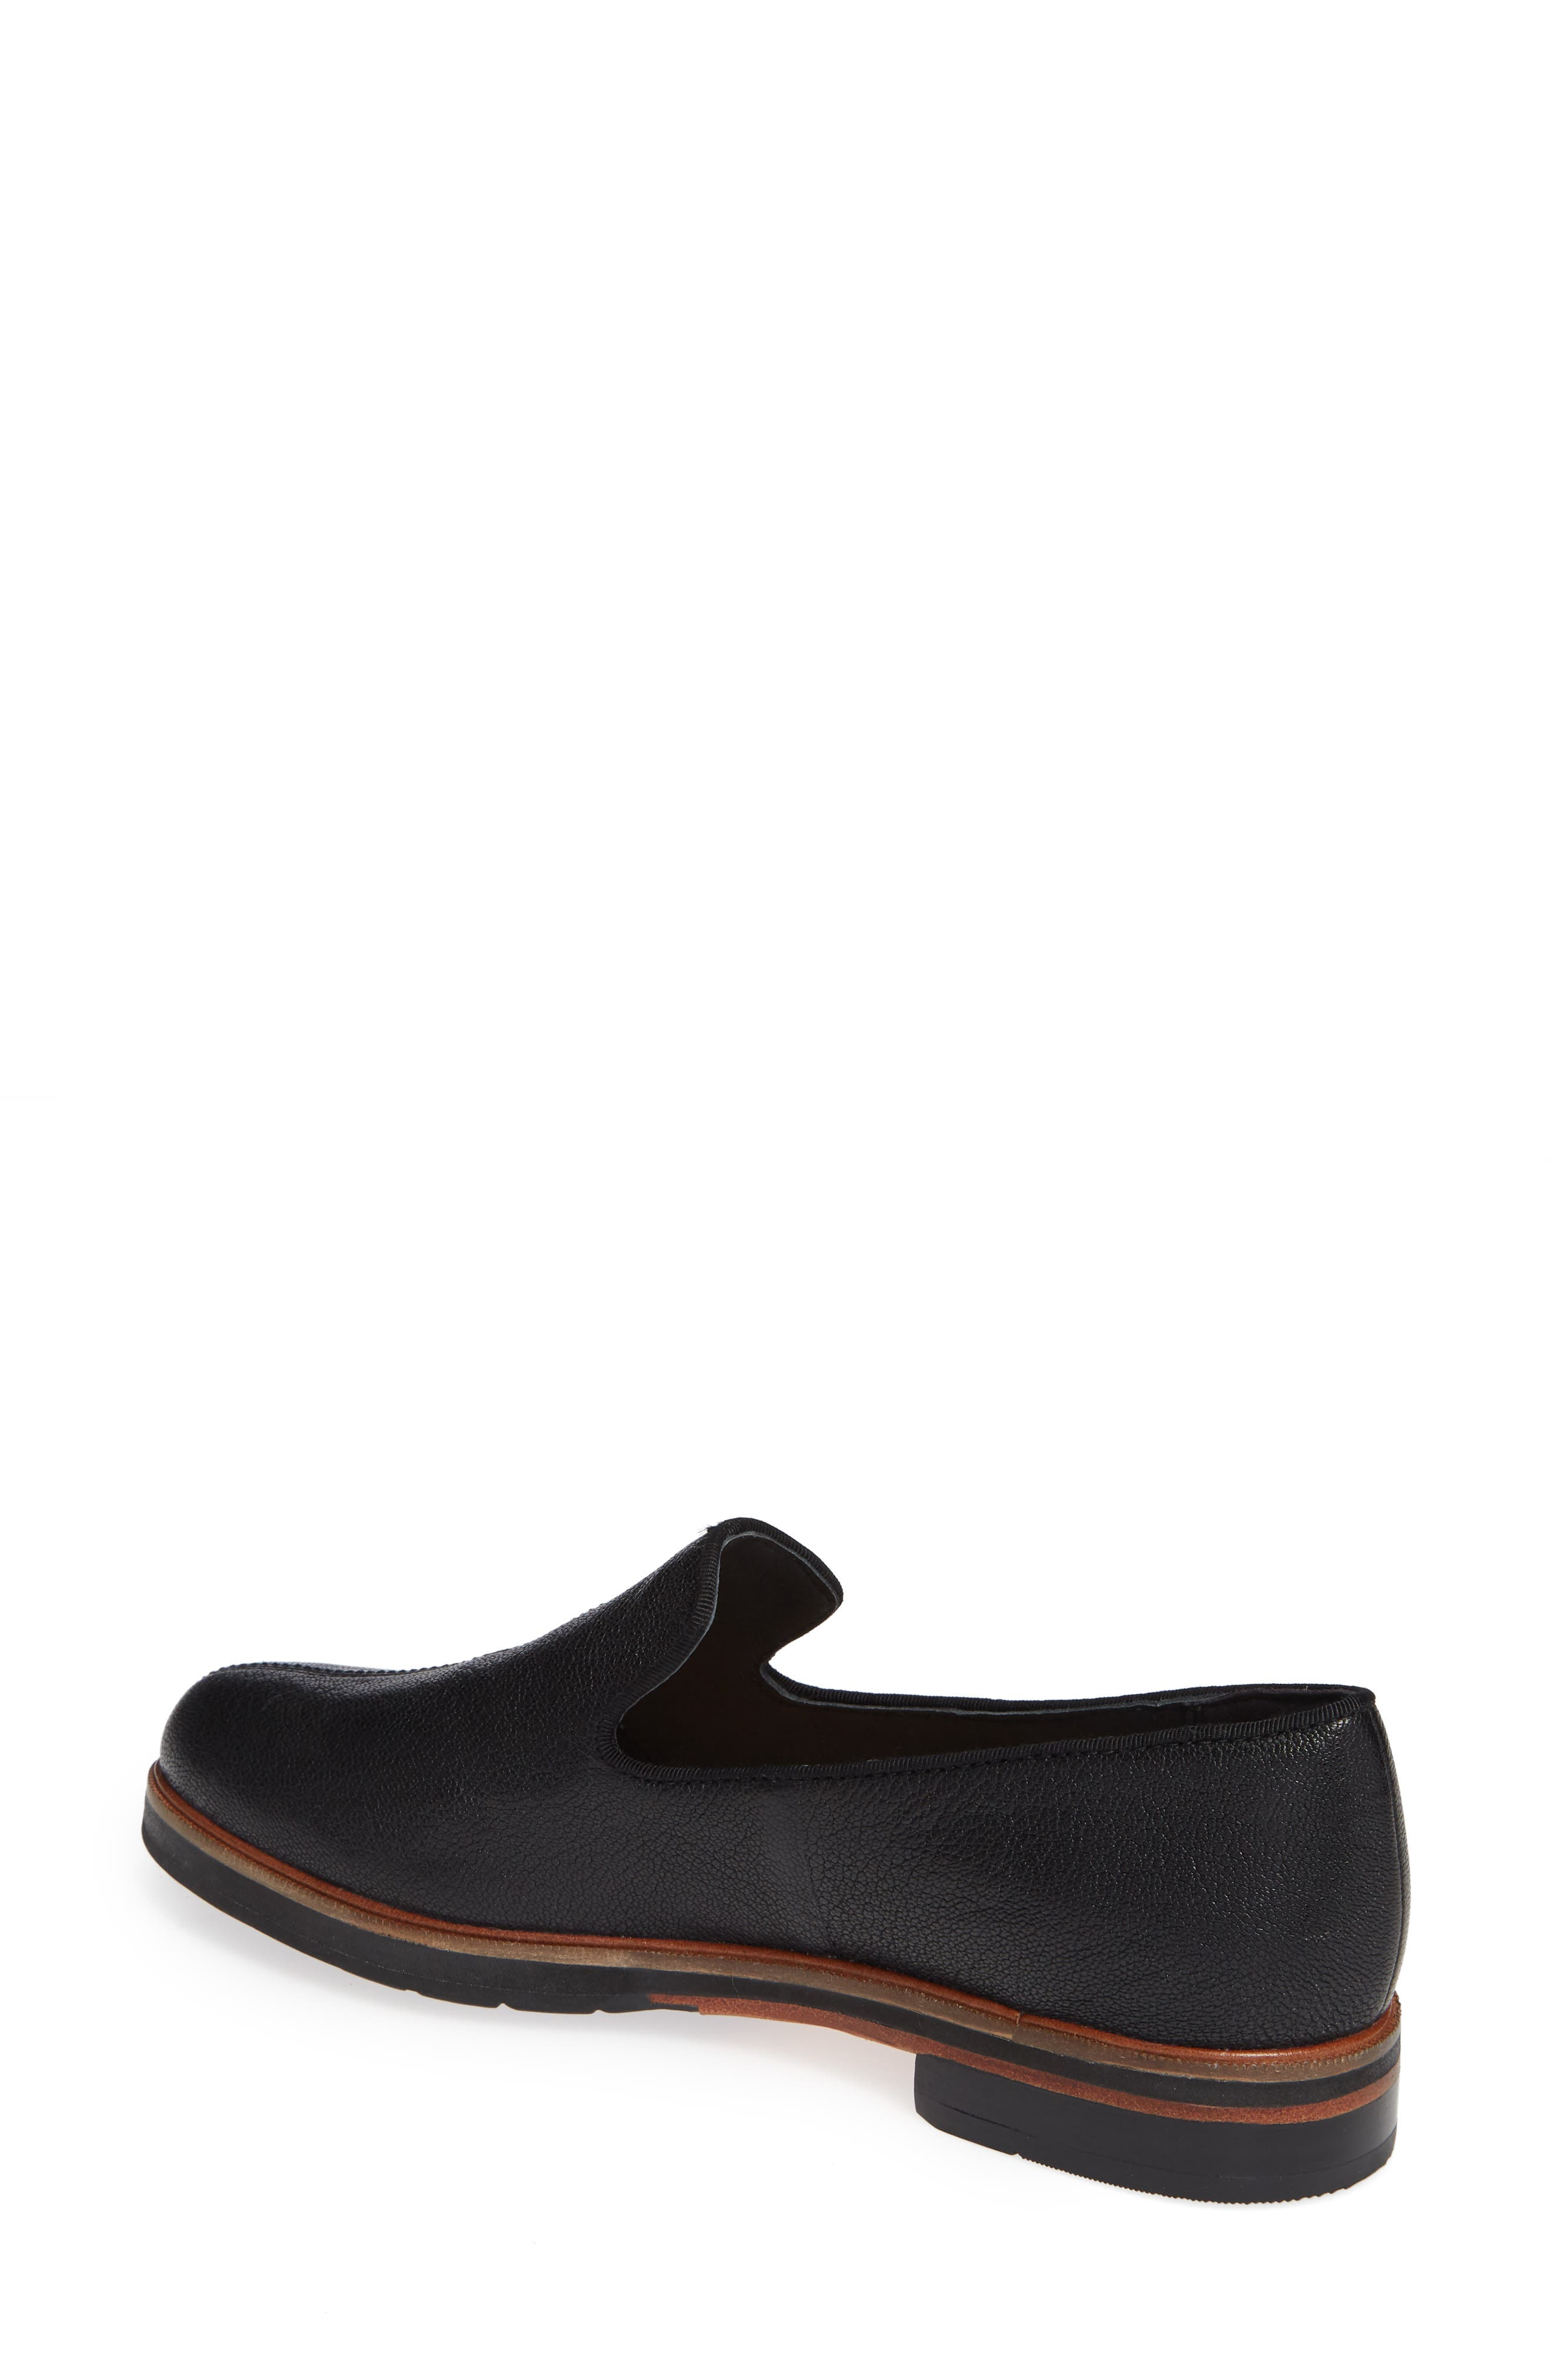 CLARKS<SUP>®</SUP>, Frida Loafer, Alternate thumbnail 2, color, BLACK TUMBLED LEATHER